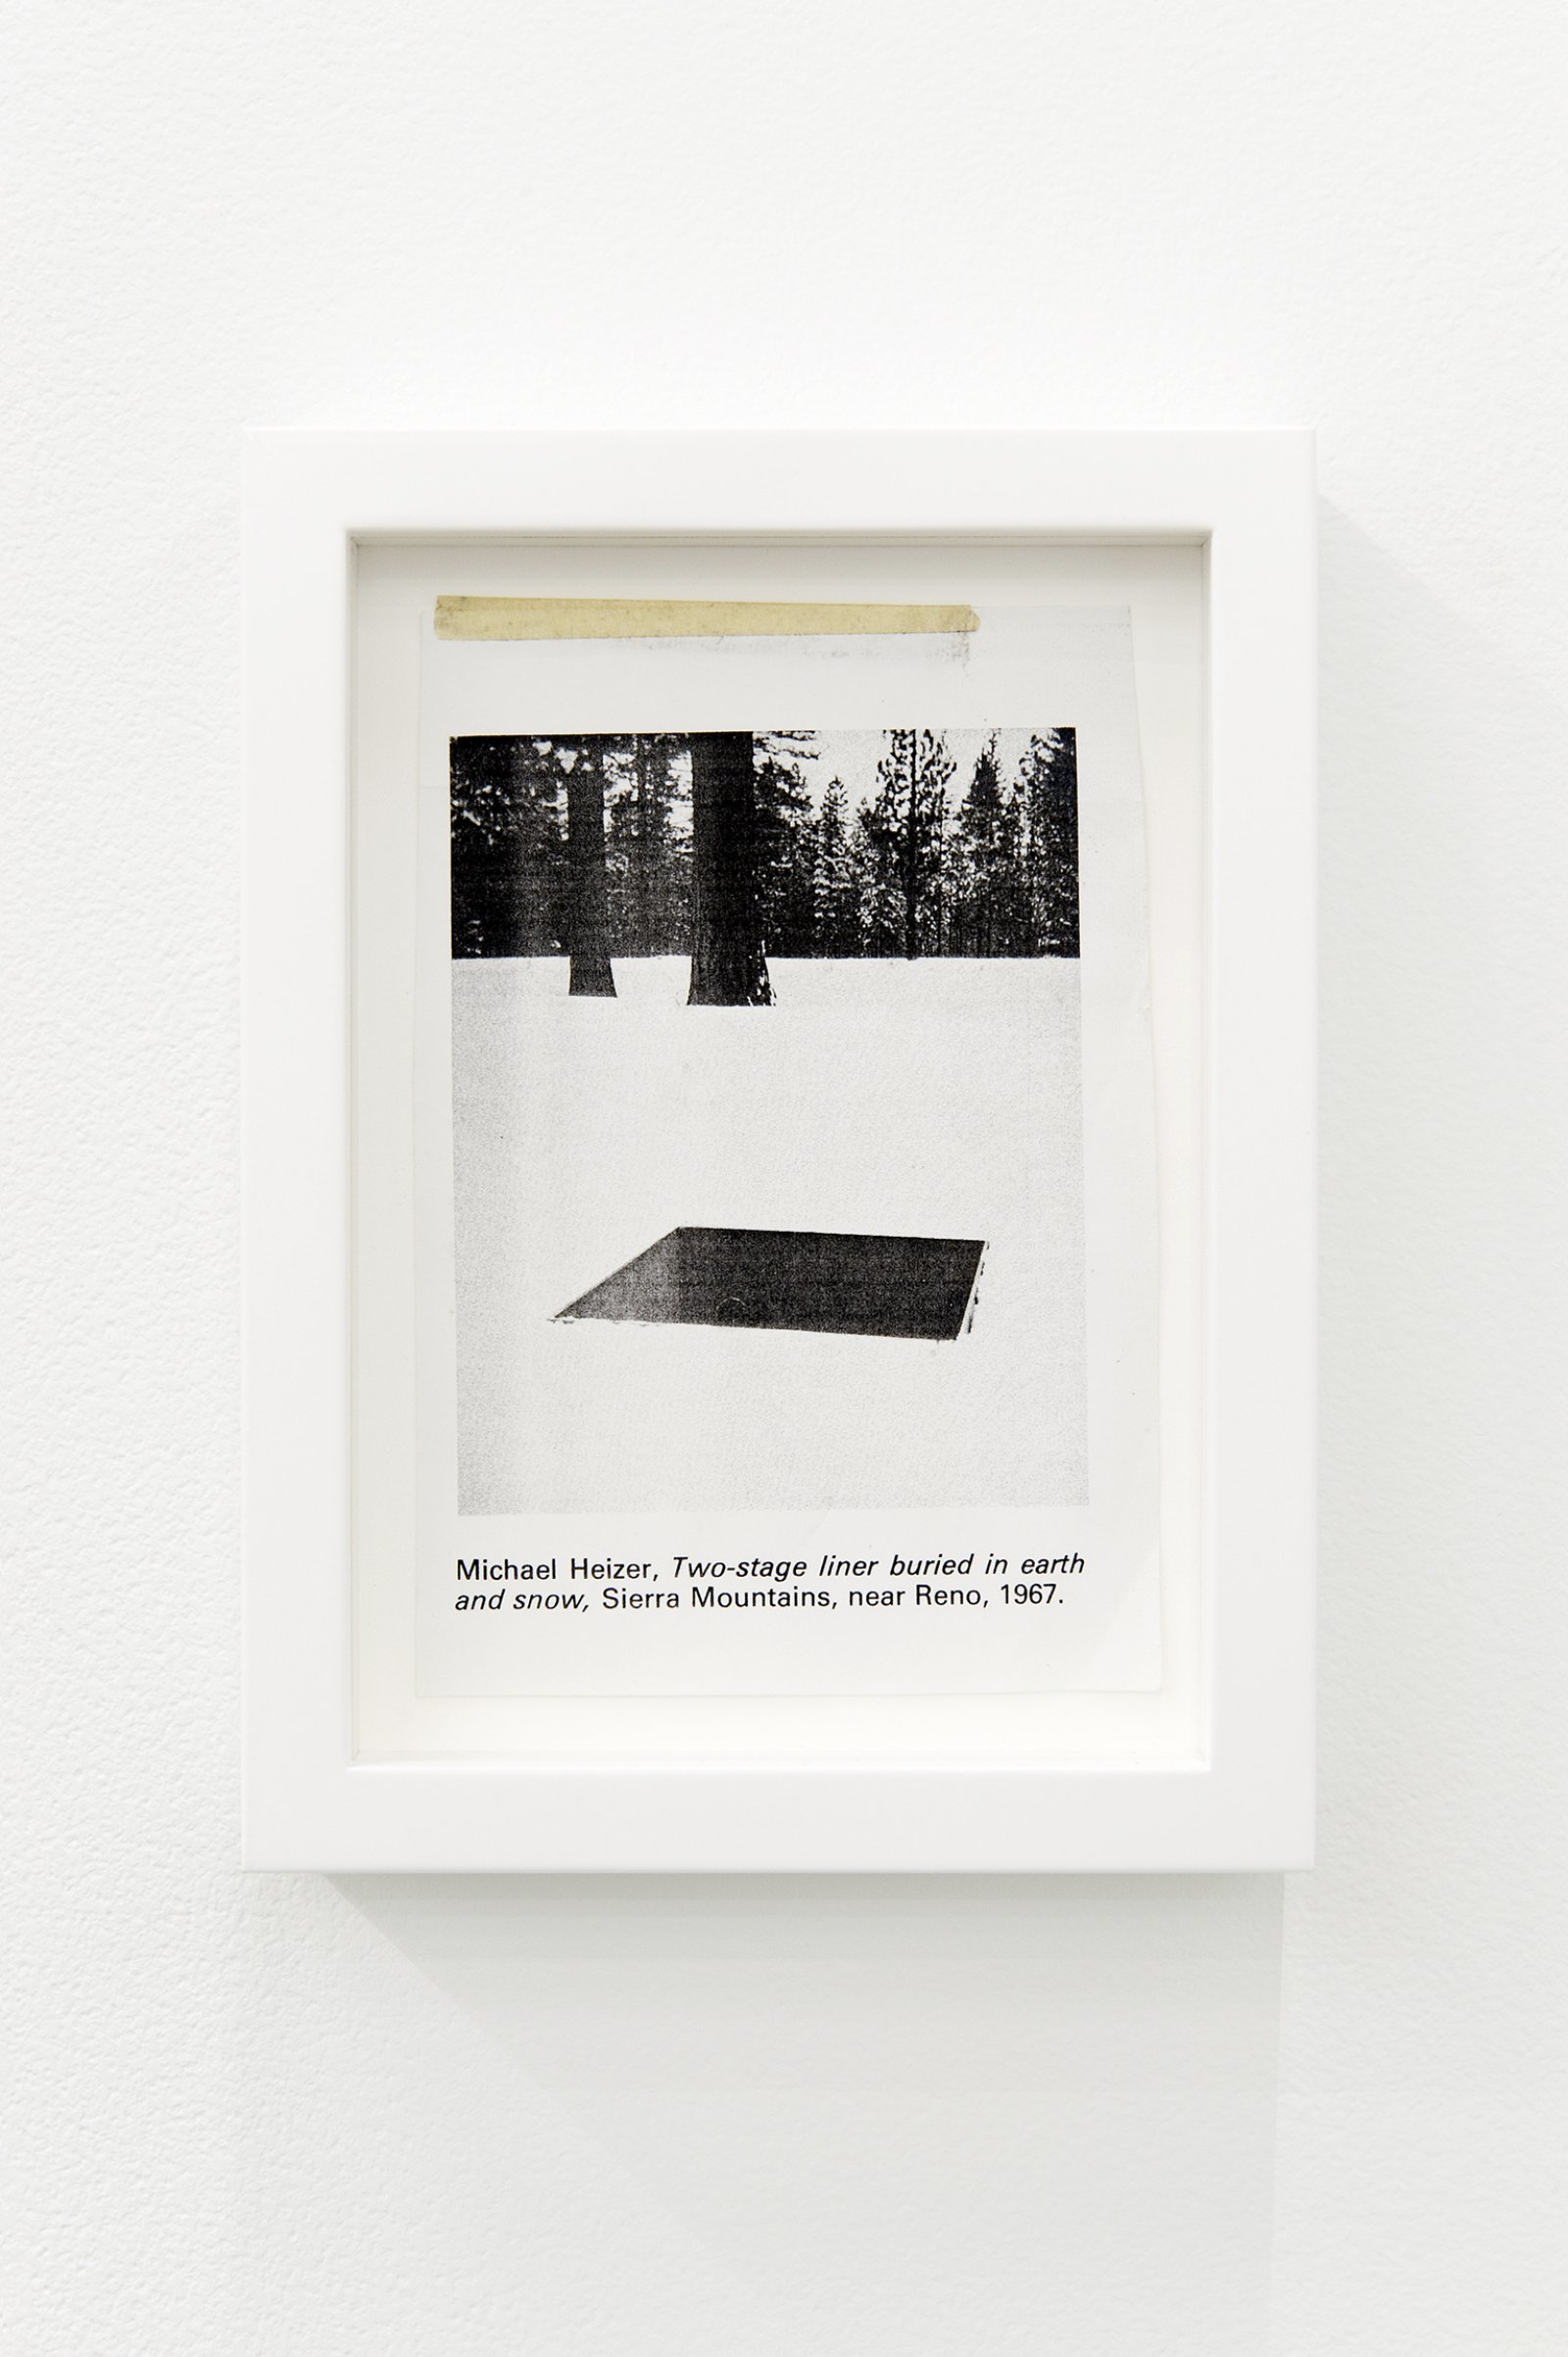 Arabella Campbell, A volume of a sculpture (detail), 2011, newsprint cutout, framed photocopy, 8 x 6 in. (20 x 15 cm)​ by